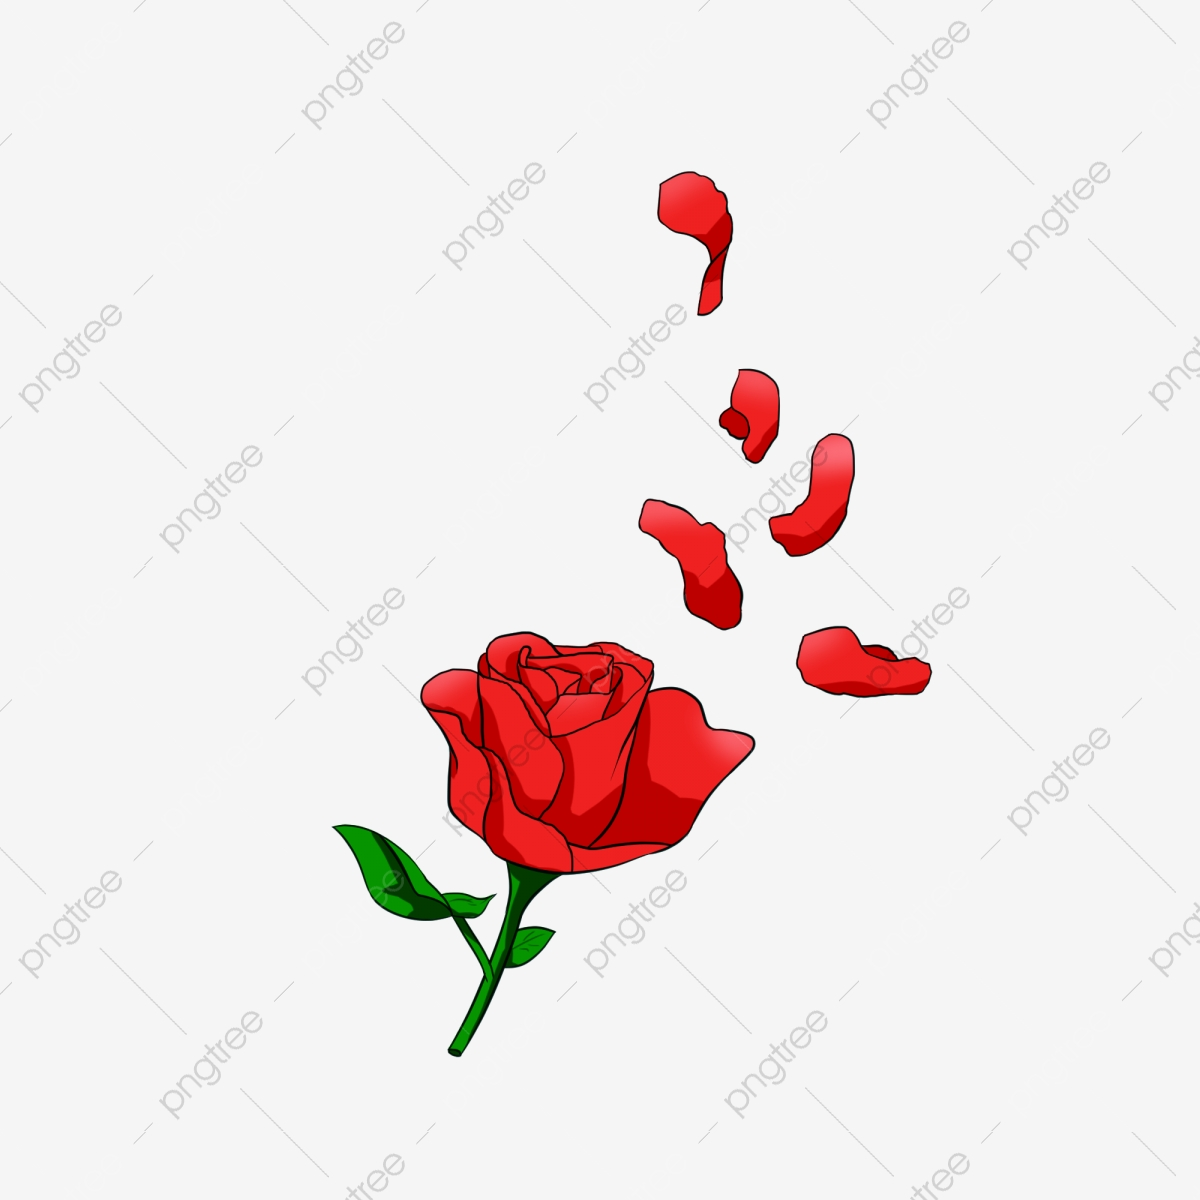 Rose Petal Flower Clip Art